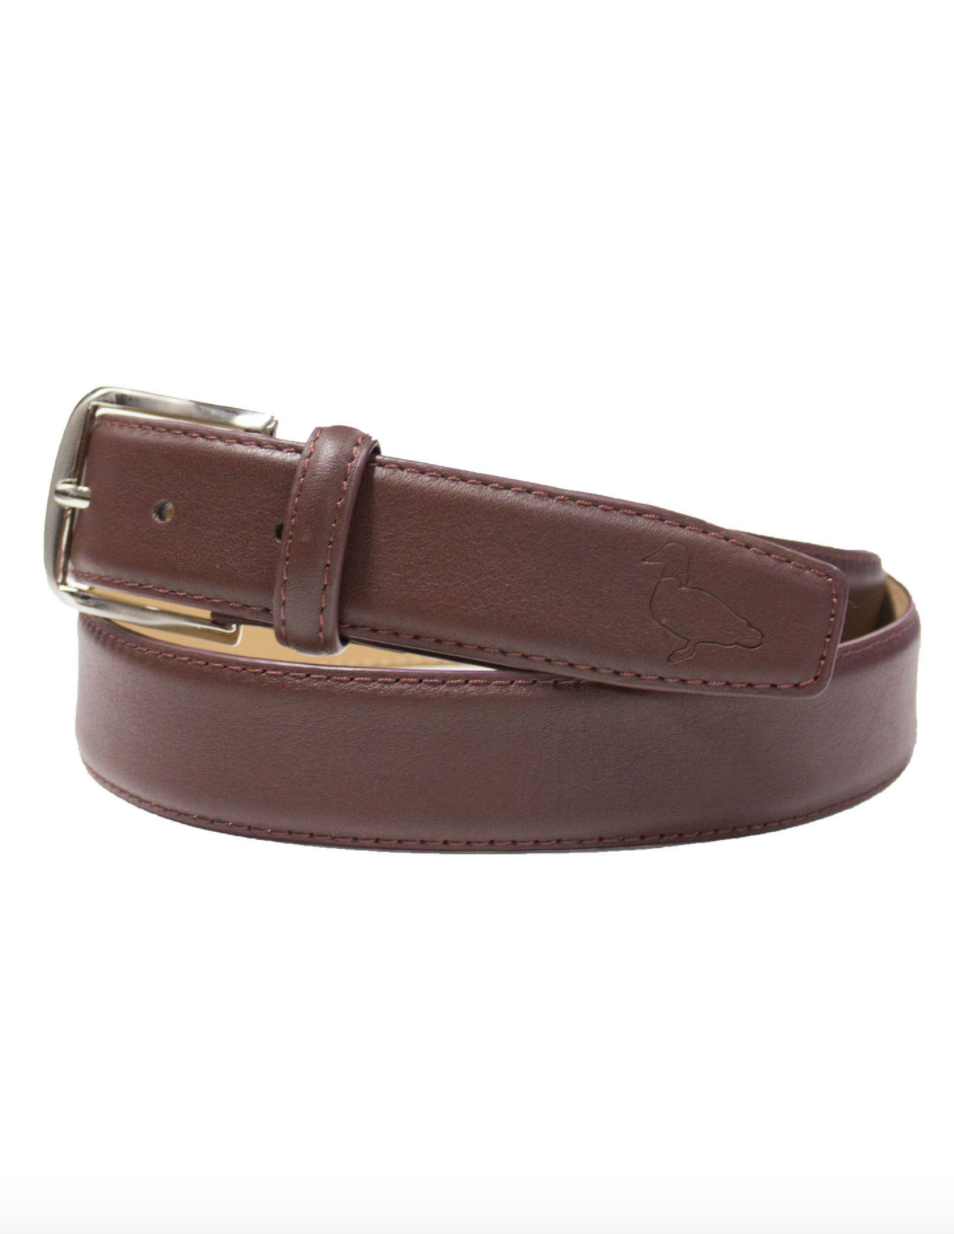 PT Leather Belt